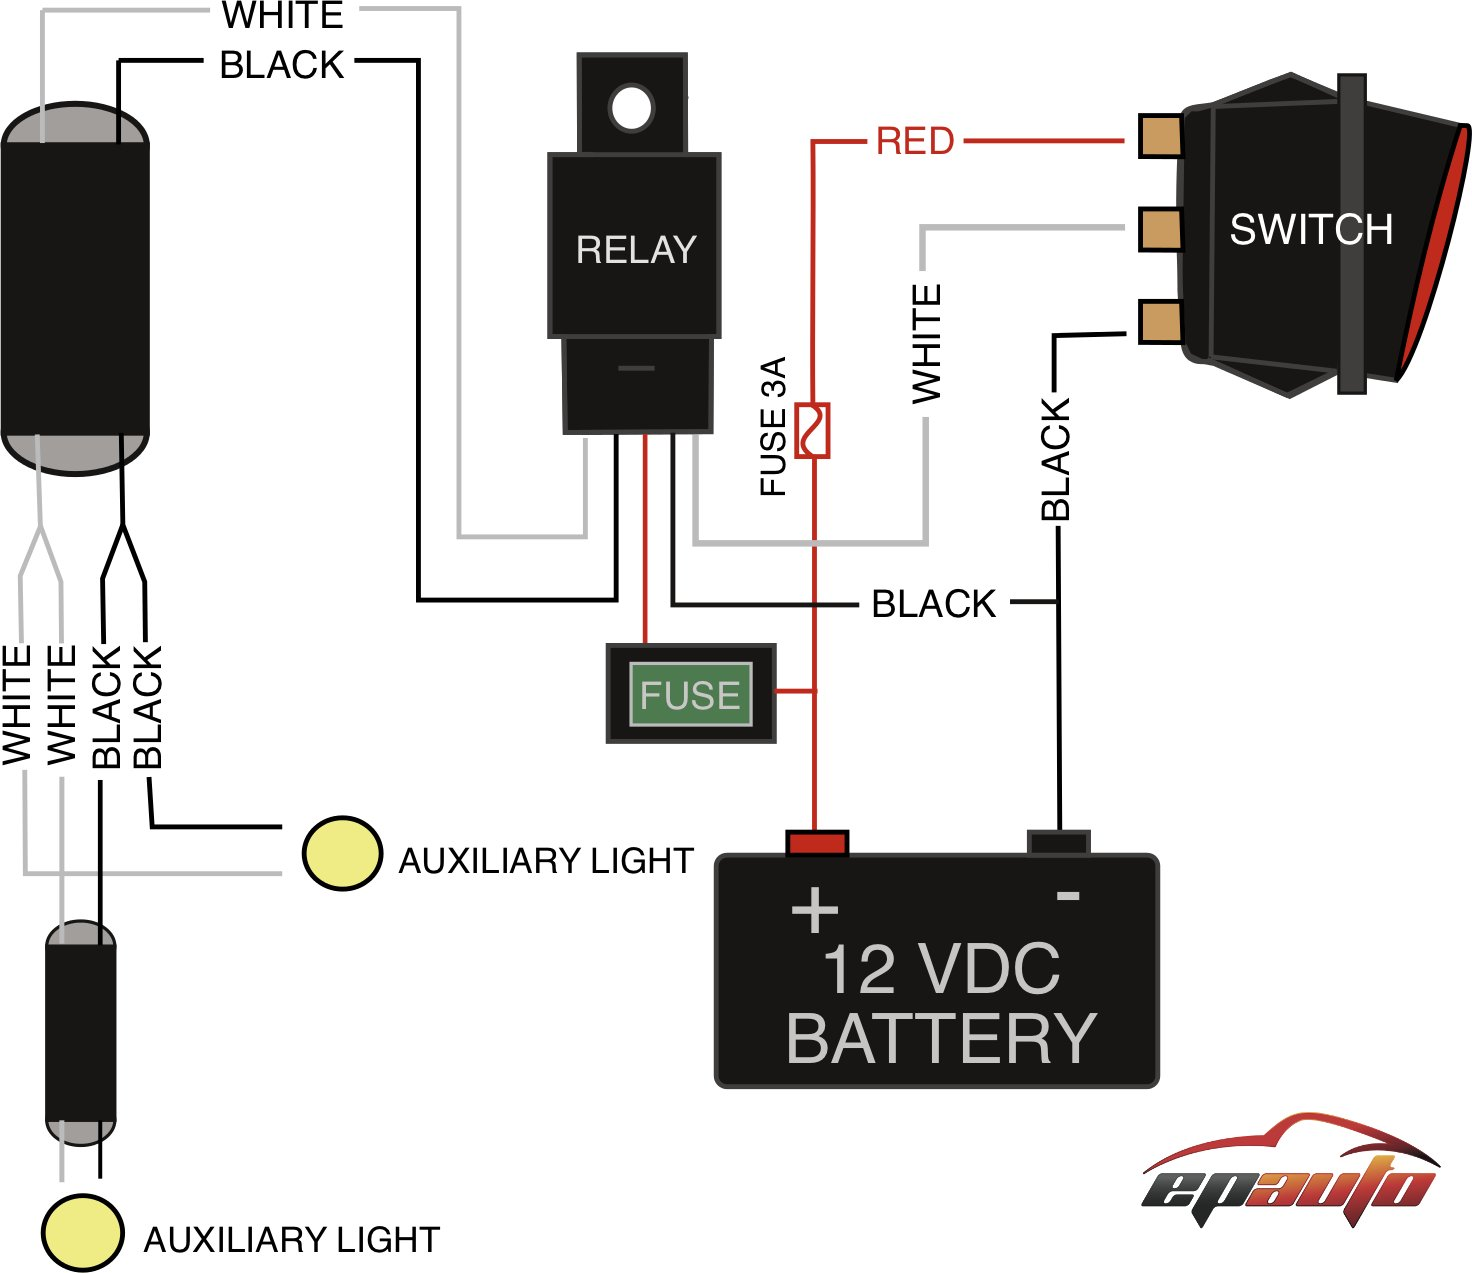 motorcycle remote start wiring diagram html with Led Light Bar Wiring Harness Diagram on 591782 Rewiring 76 Shovel besides Dse3110 Wiring Diagram further Viper 3203 Wiring Diagram besides Motorcycle Alarm System Wiring Diagram further Index.